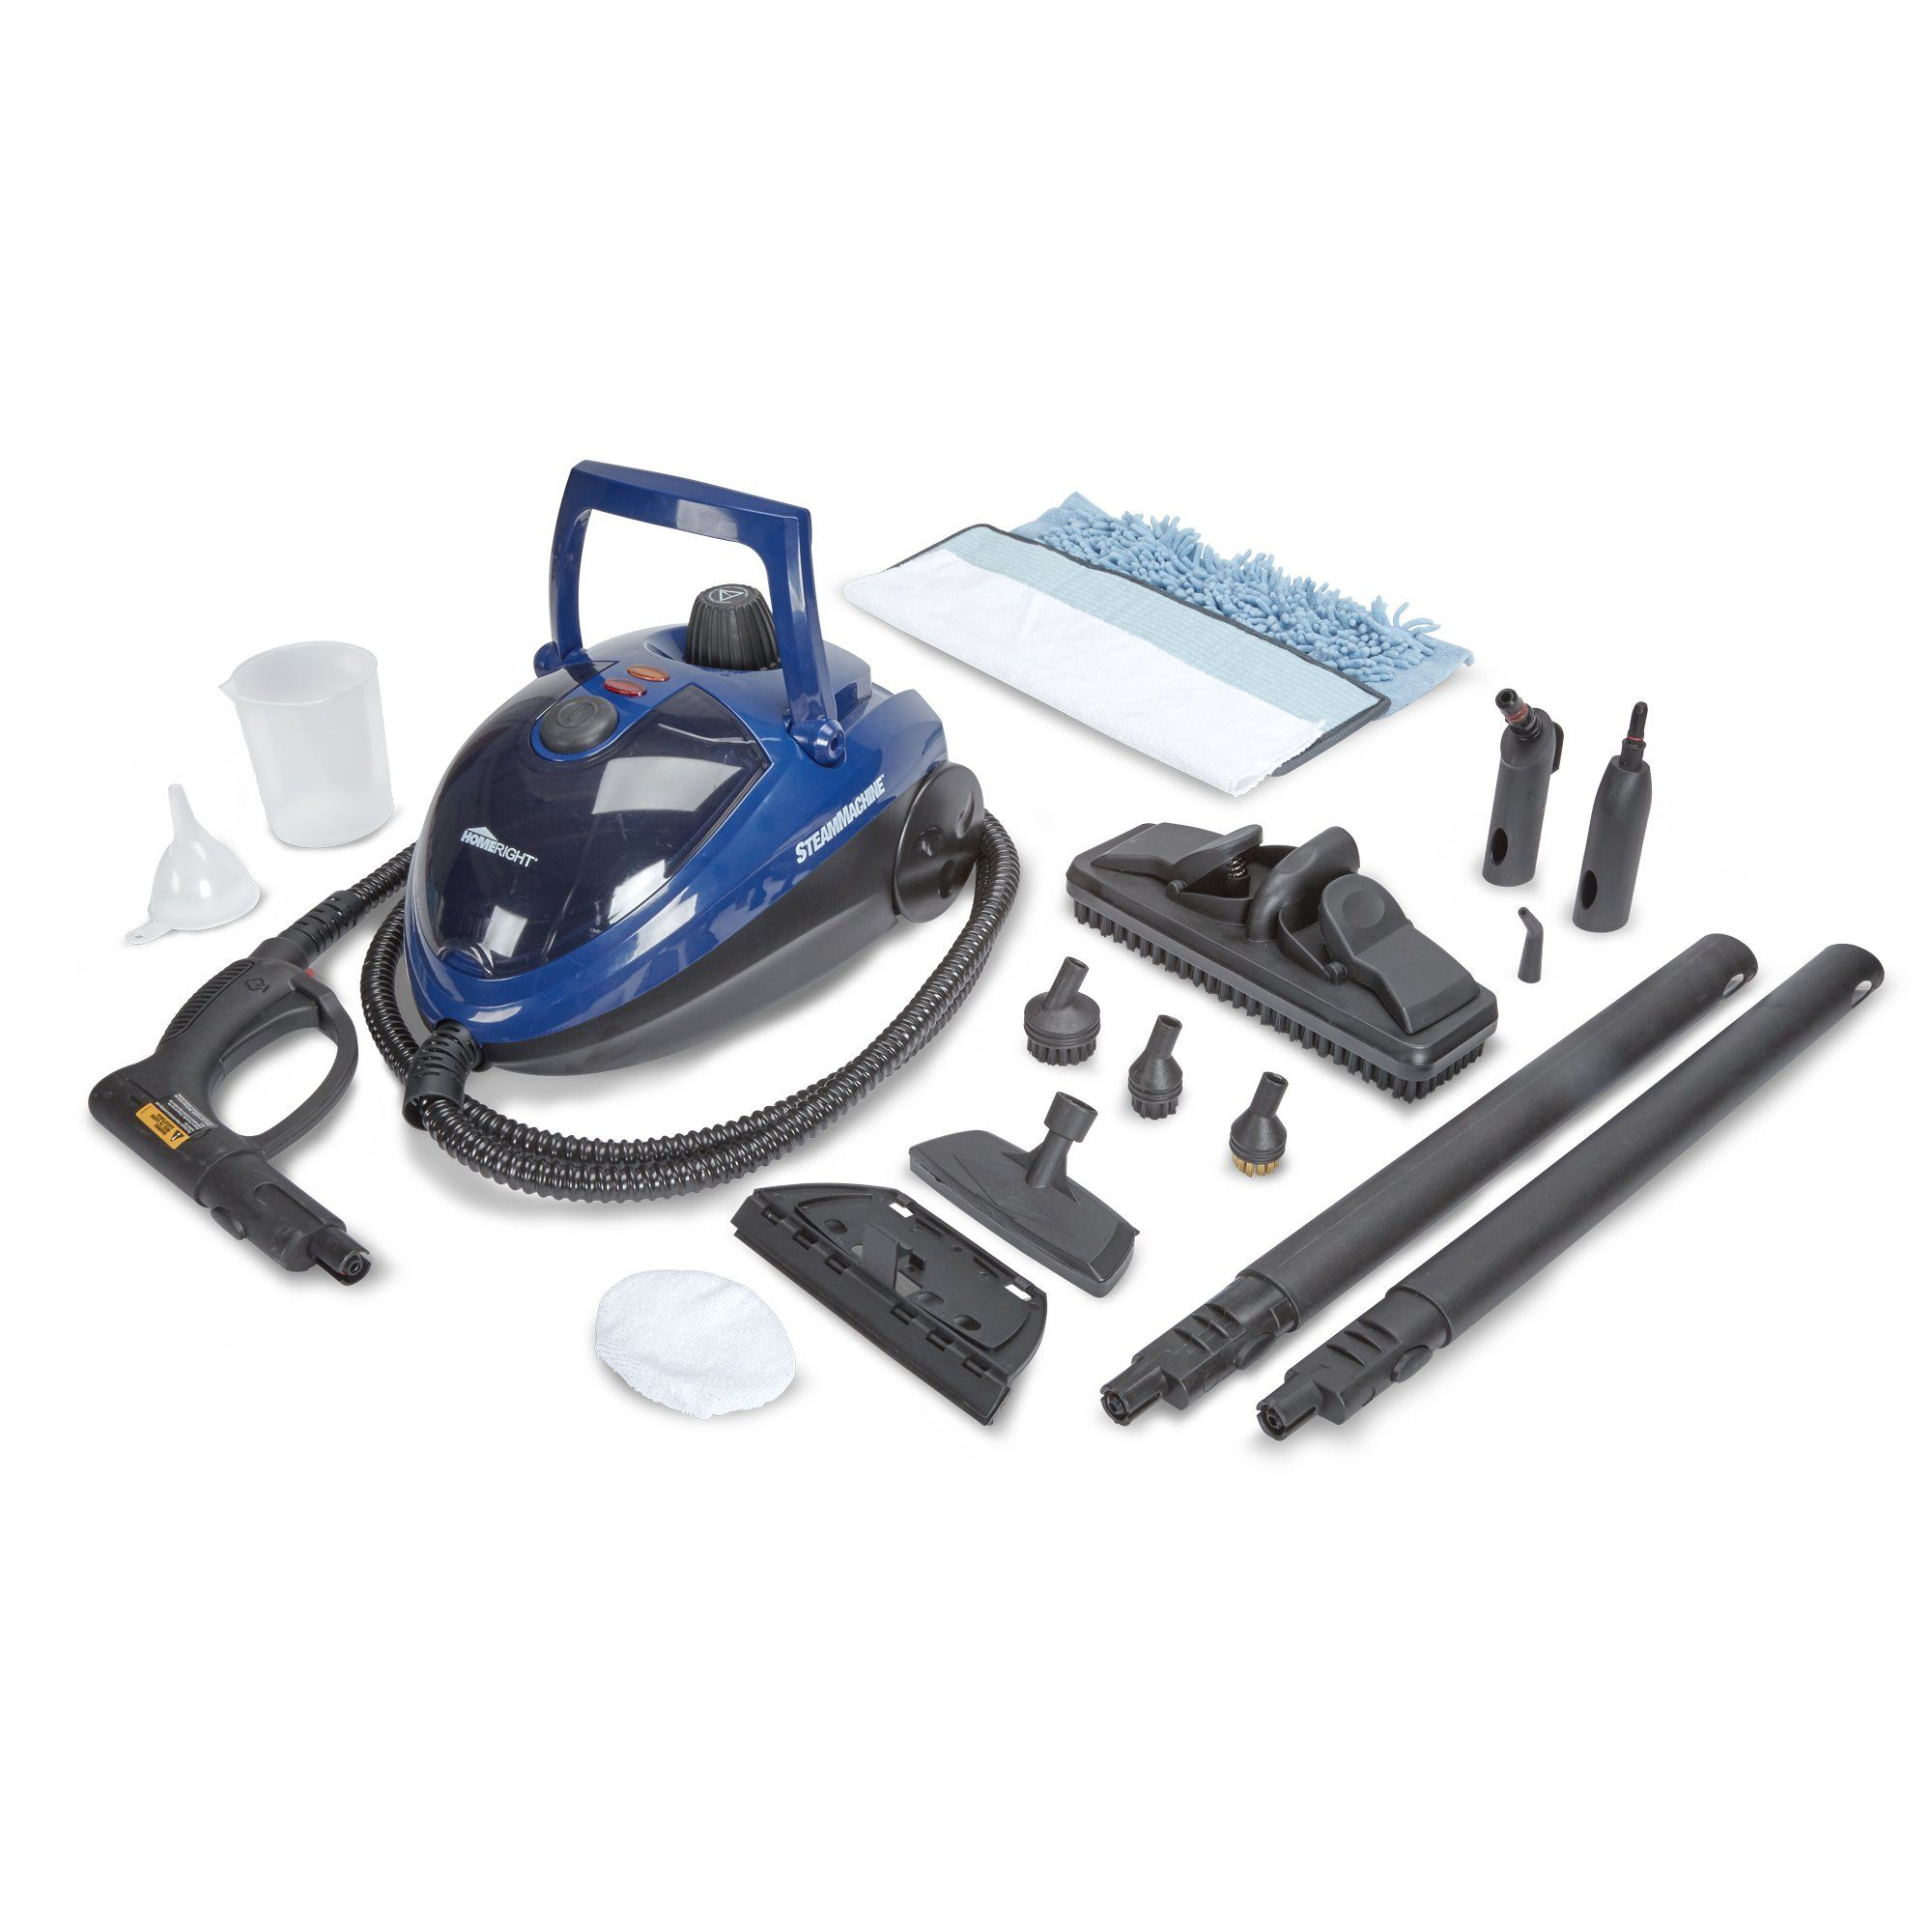 HomeRight SteamMachine C900053.M Blue Multi-Purpose Steam Cleaner ...